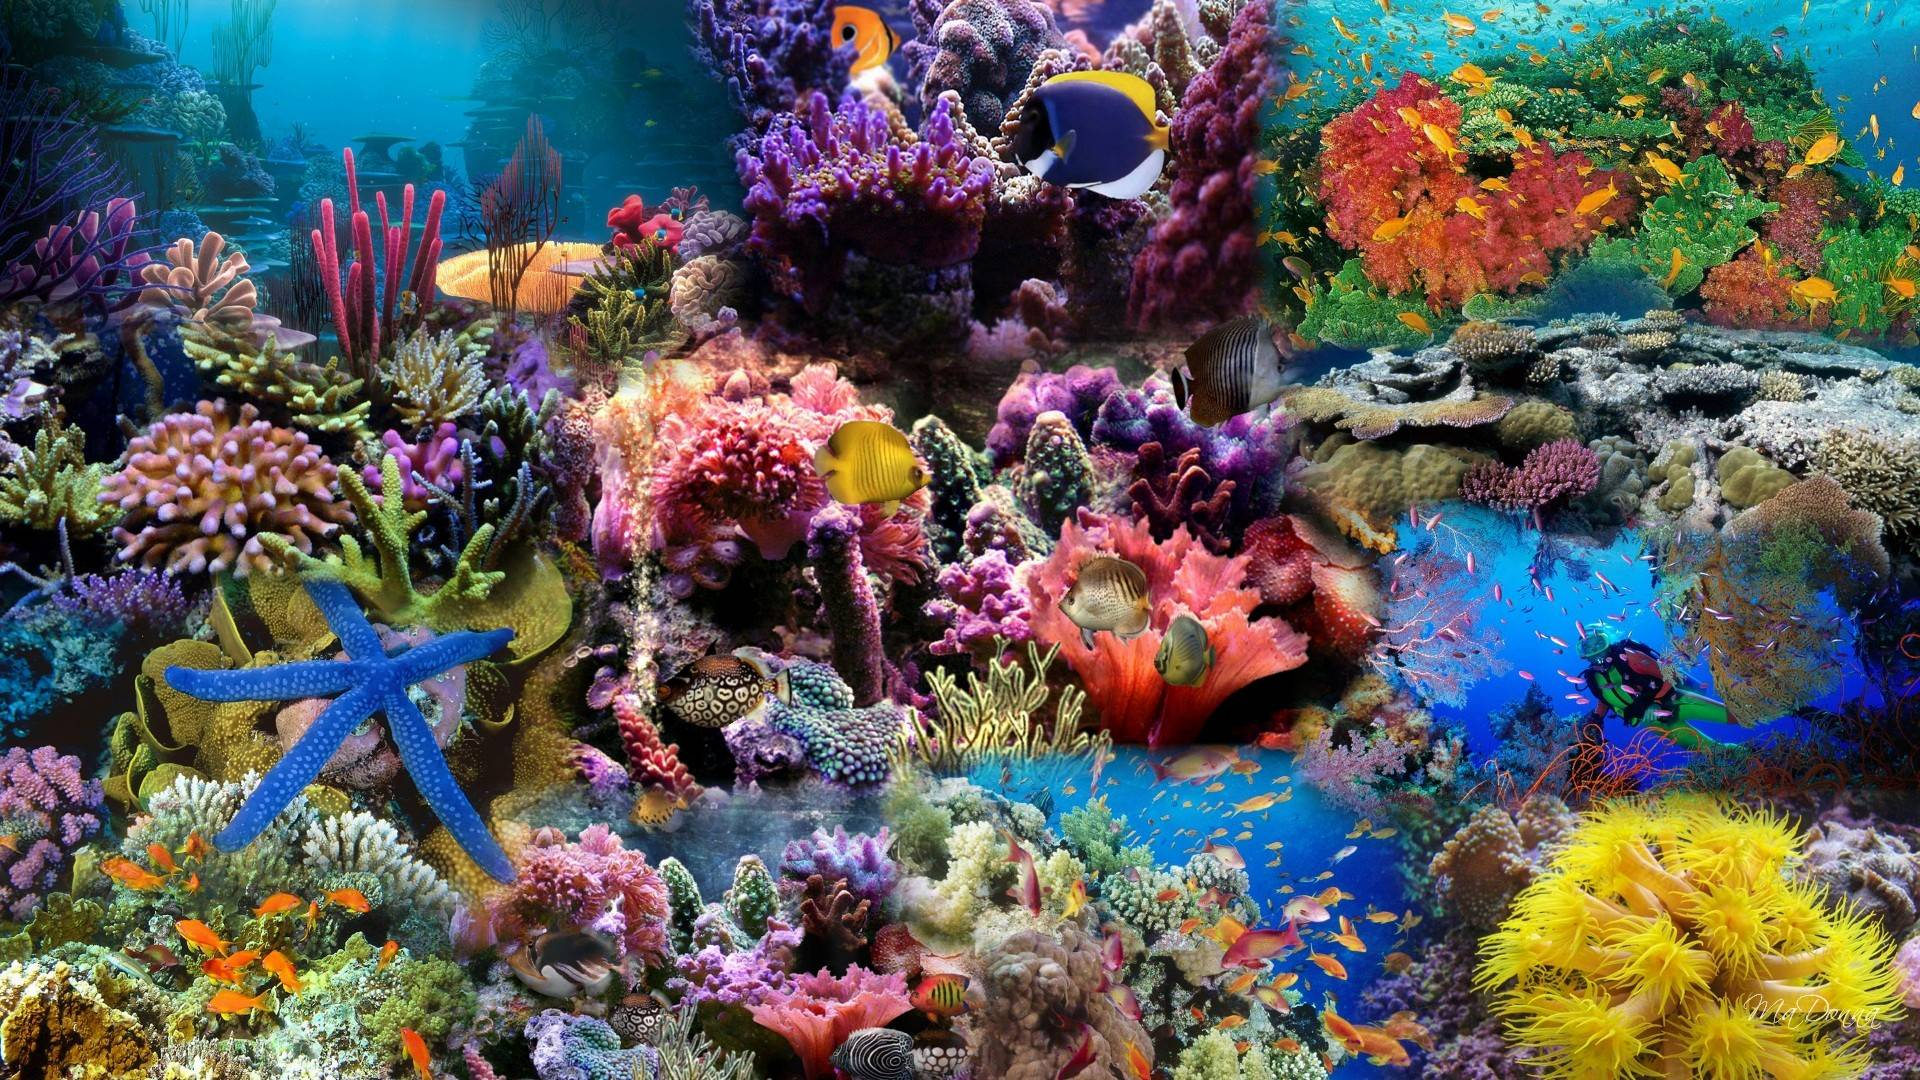 HD Aquarium Background Wallpaper